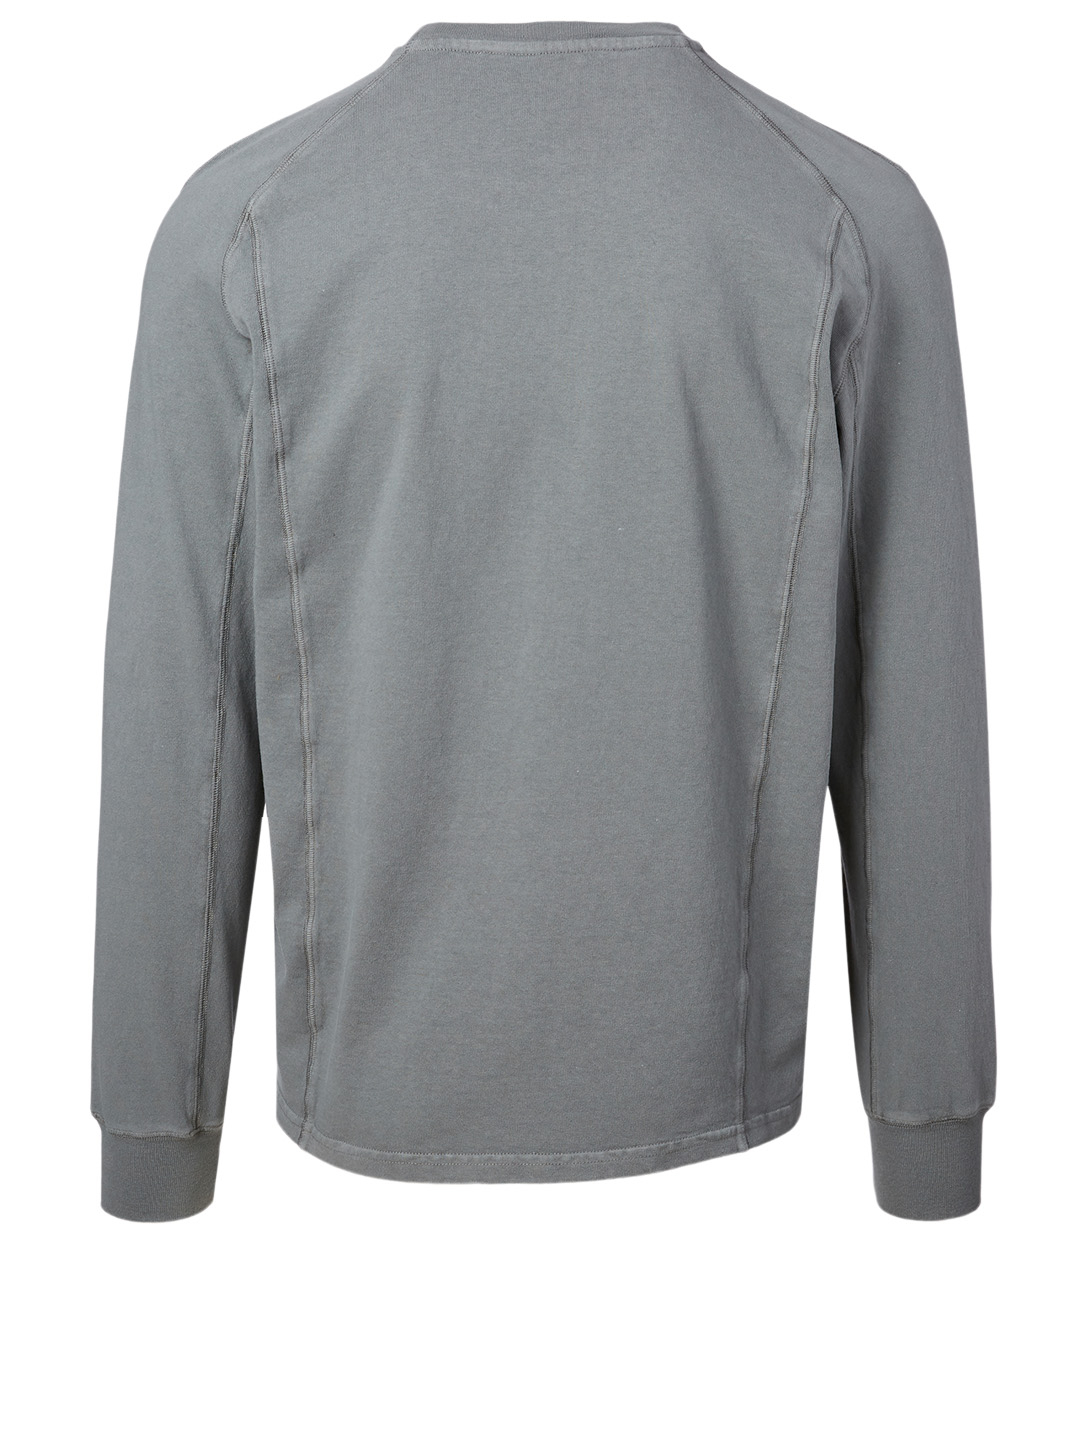 1017 ALYX 9SM Cotton Sweatshirt With Pocket Men's Grey